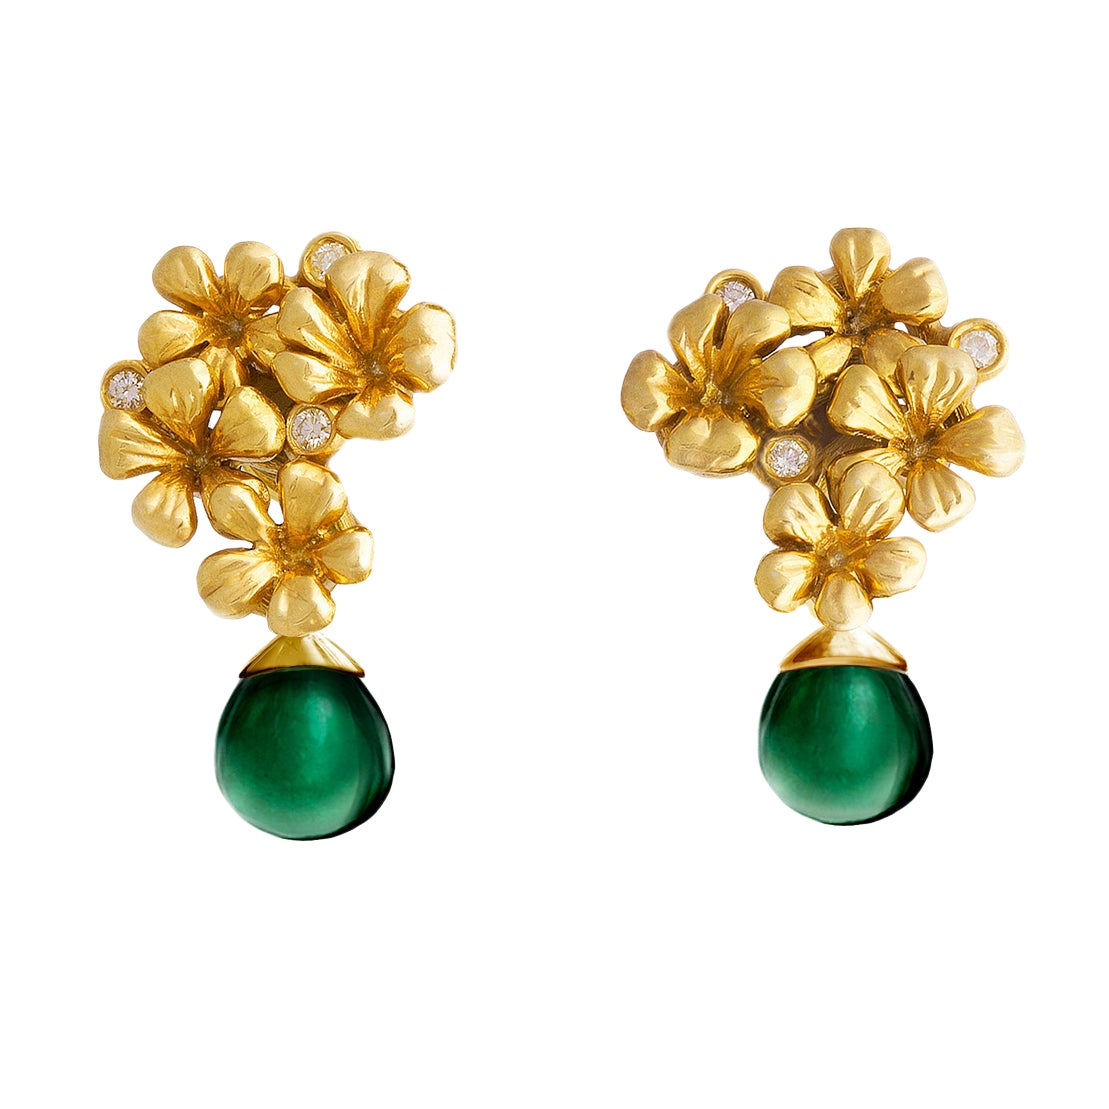 Yellow Gold Modern Clip-On Earrings with Round Diamonds and Chalcedonies